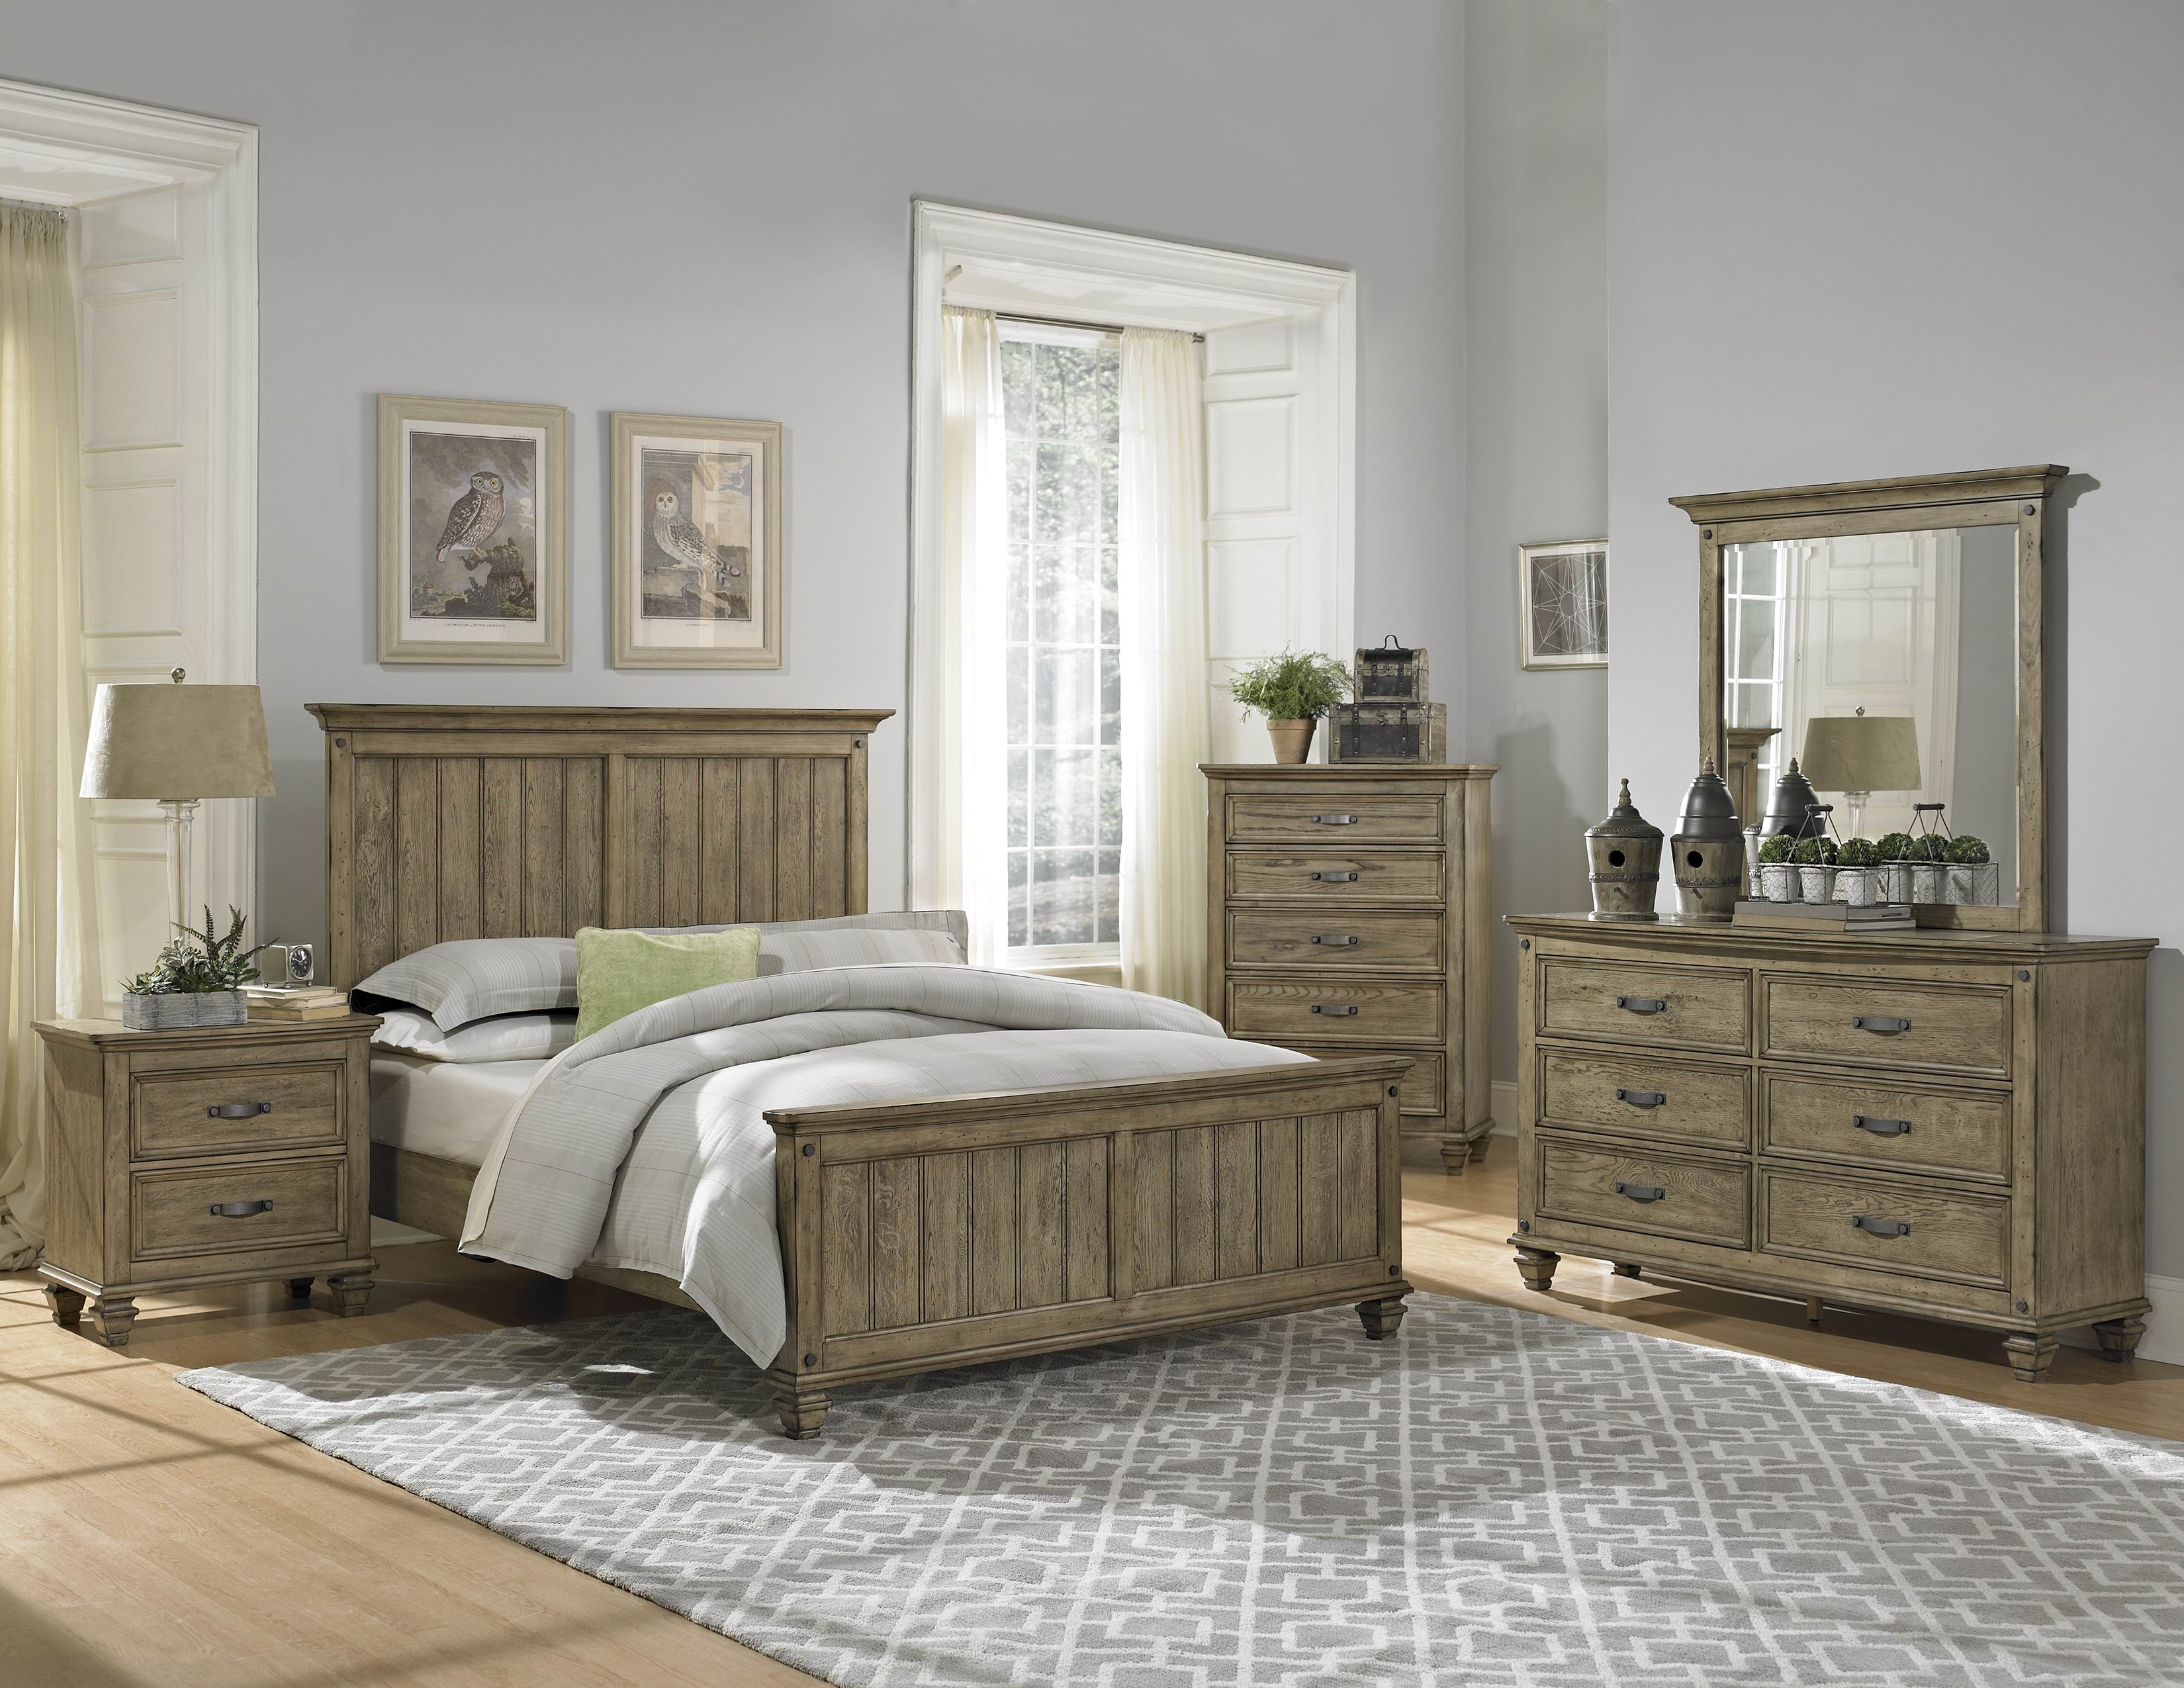 Beach Bedroom Furniture White Cileather Home Design Ideas pertaining to size 3300 X 2550